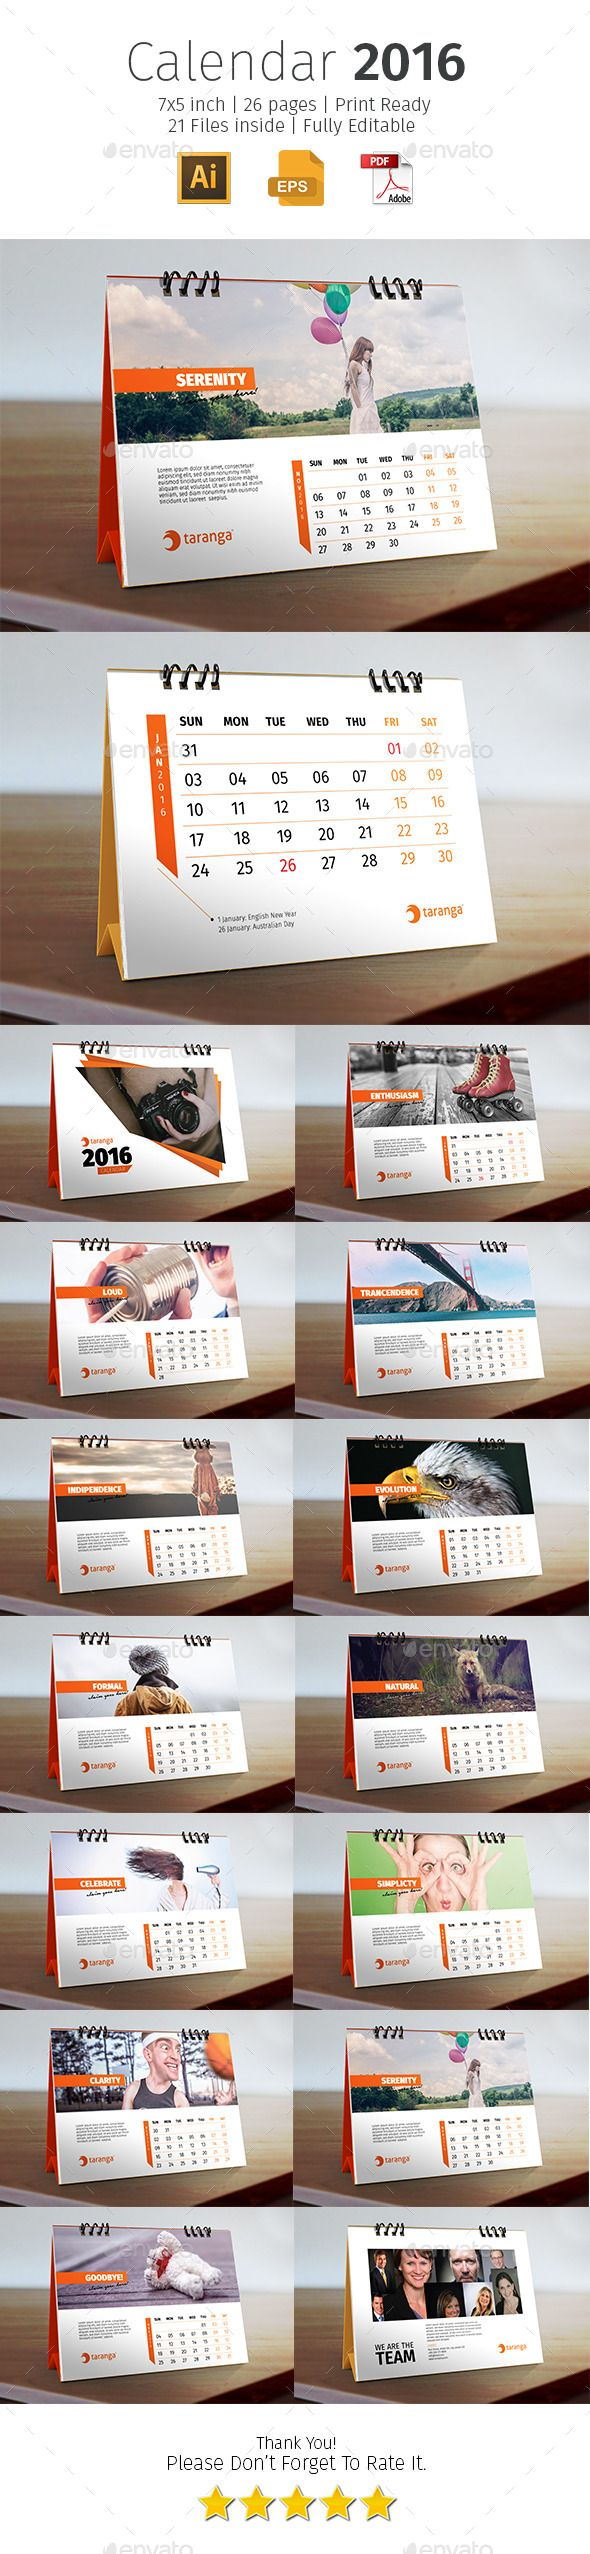 2016 Corporate Desk Calendar Template #design Download: http://graphicriver.net/item/2016-corporate-desk-calendar/12604202?ref=ksioks